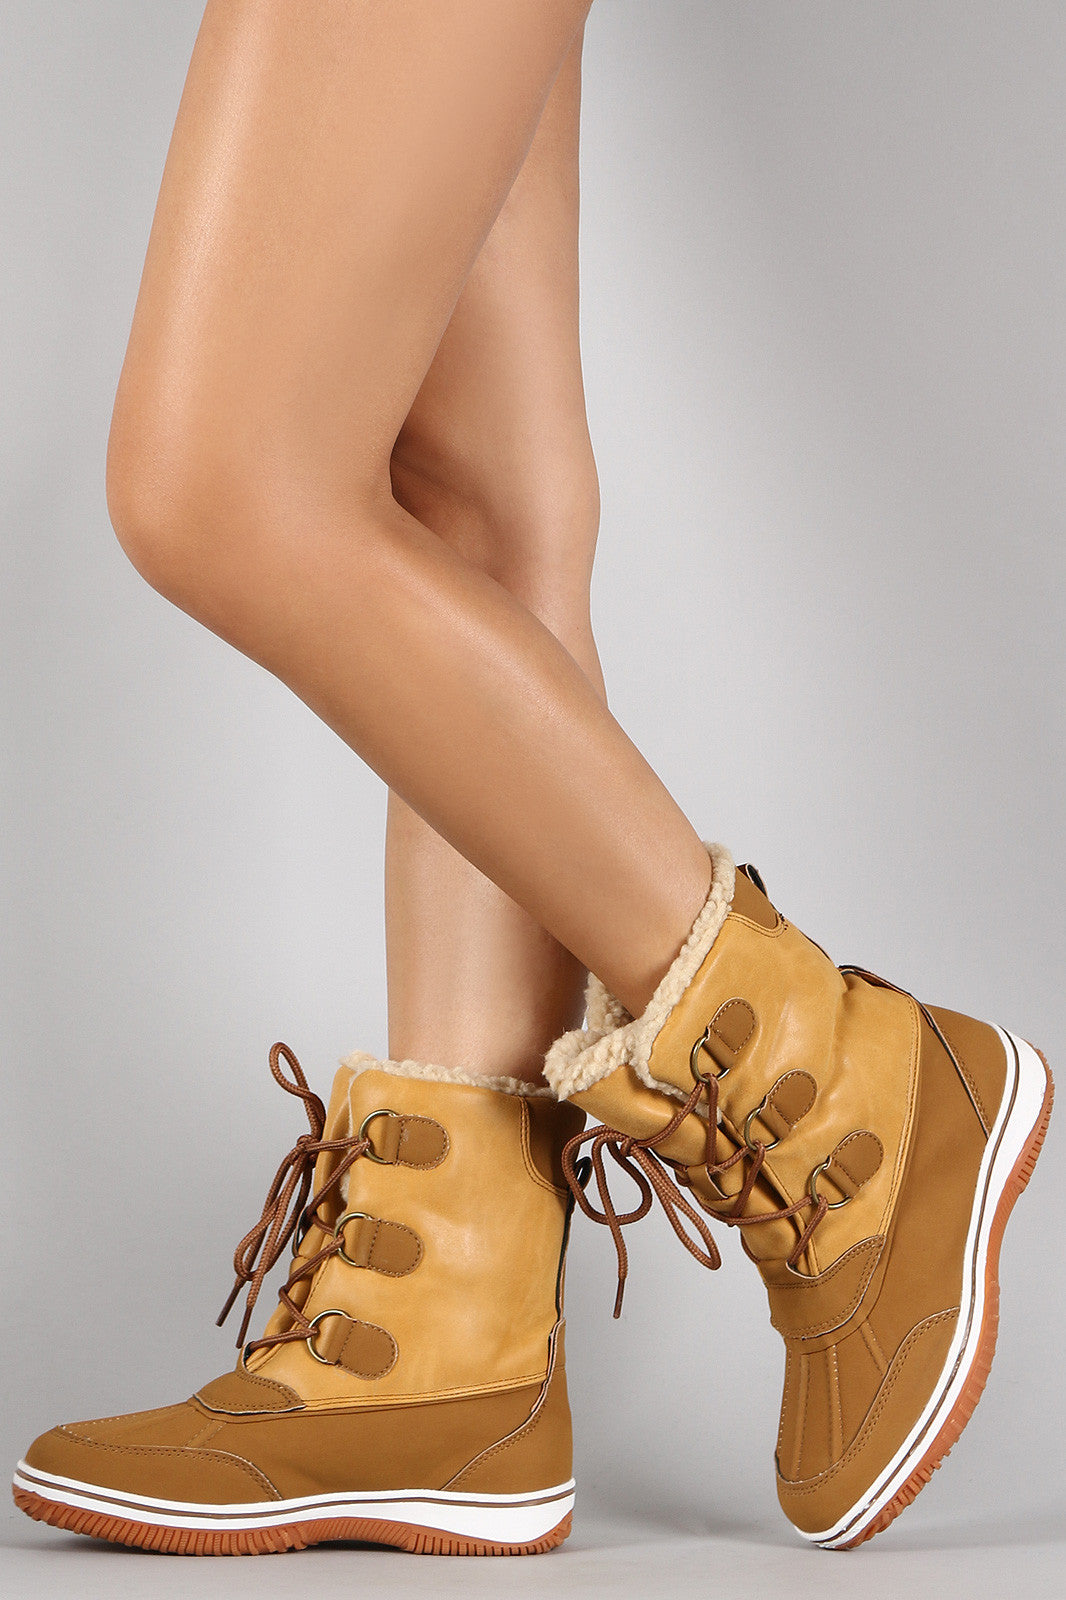 5300c8e2b832f ... Faux Shearling Round Toe Lace Up Duck Boots Shoes Mid Calf Booties ...